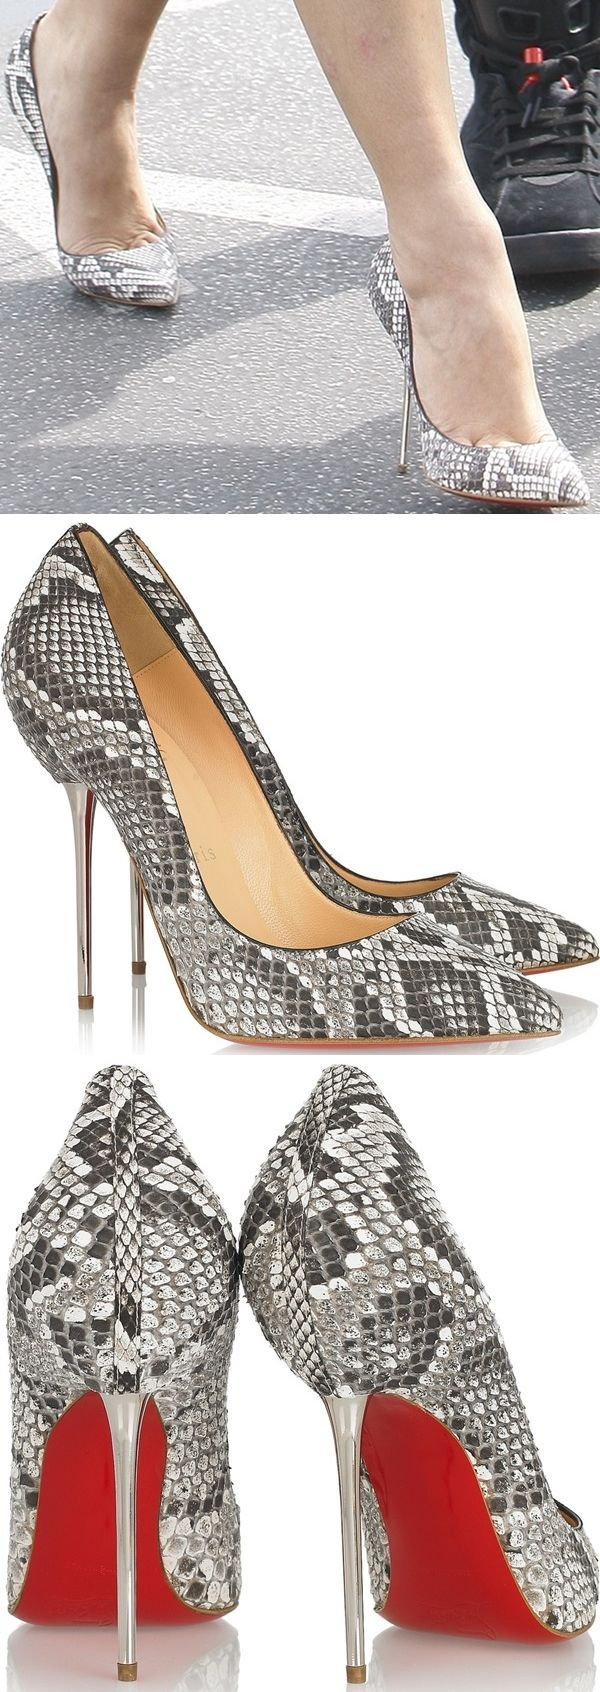 Kim Kardashian in Christian Louboutin 'Lipsinka' python point toe pumps